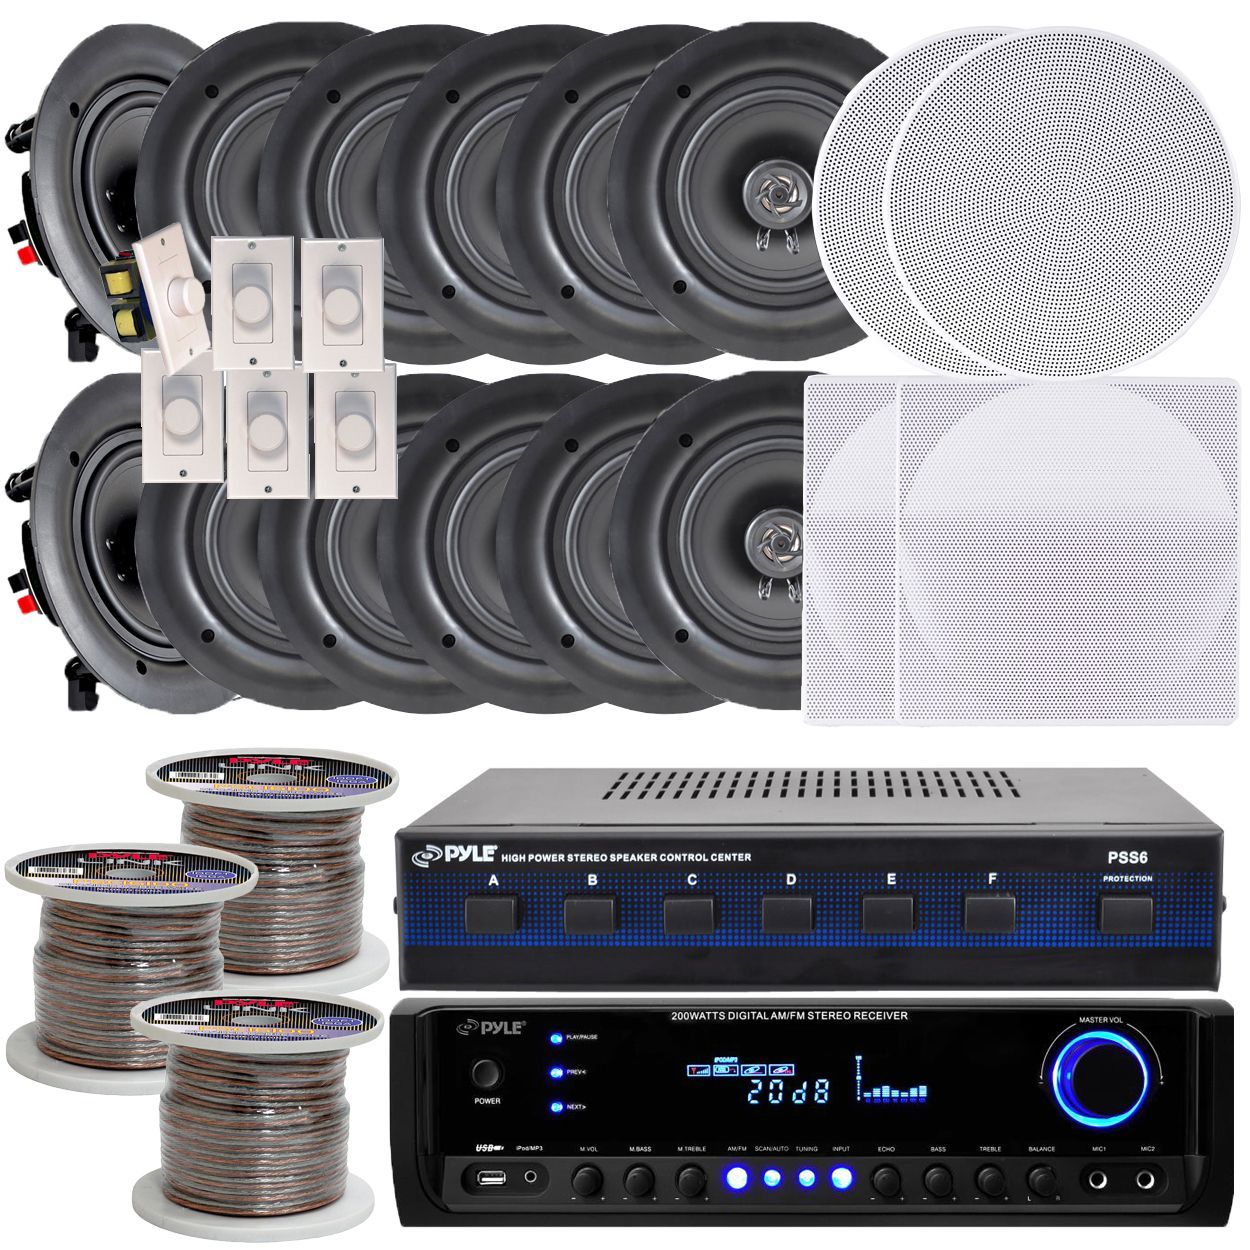 Pyle Kthsp370 6 Room In Wall Ceiling 525 Inch Speaker System With Speakers Wiring Receiver Volume Controls Selector 300 Foot Wire White